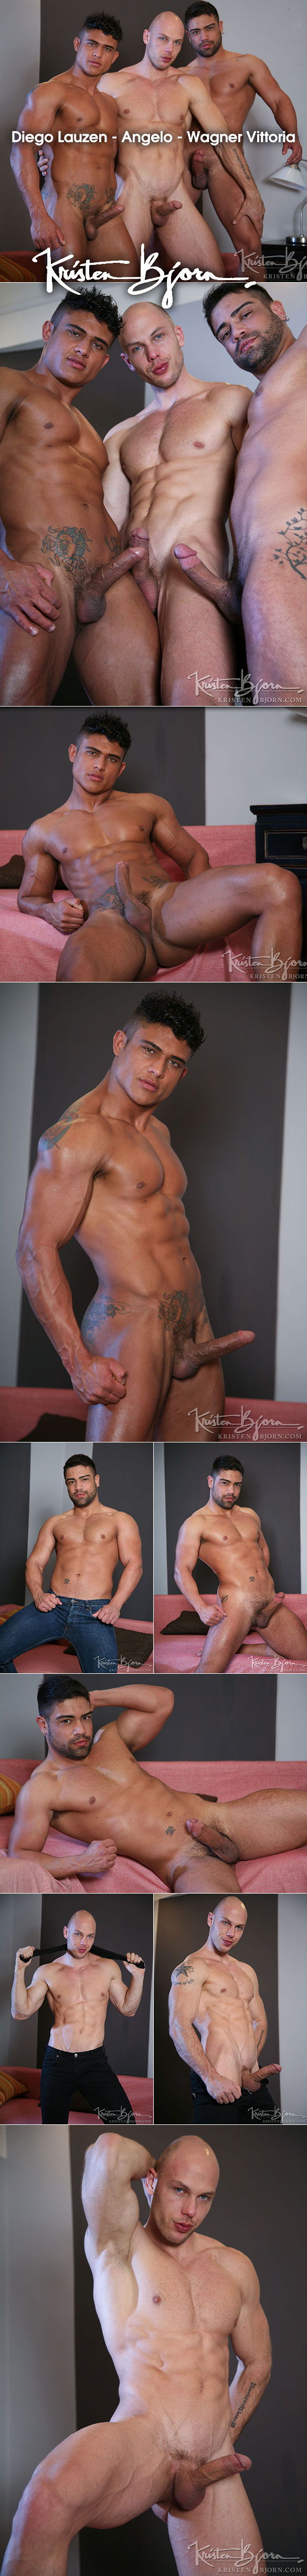 "KristenBjorn: Wagner Vittoria, Diego Lauzen and Angelo's hot threeway in ""Strangers in Prague"""